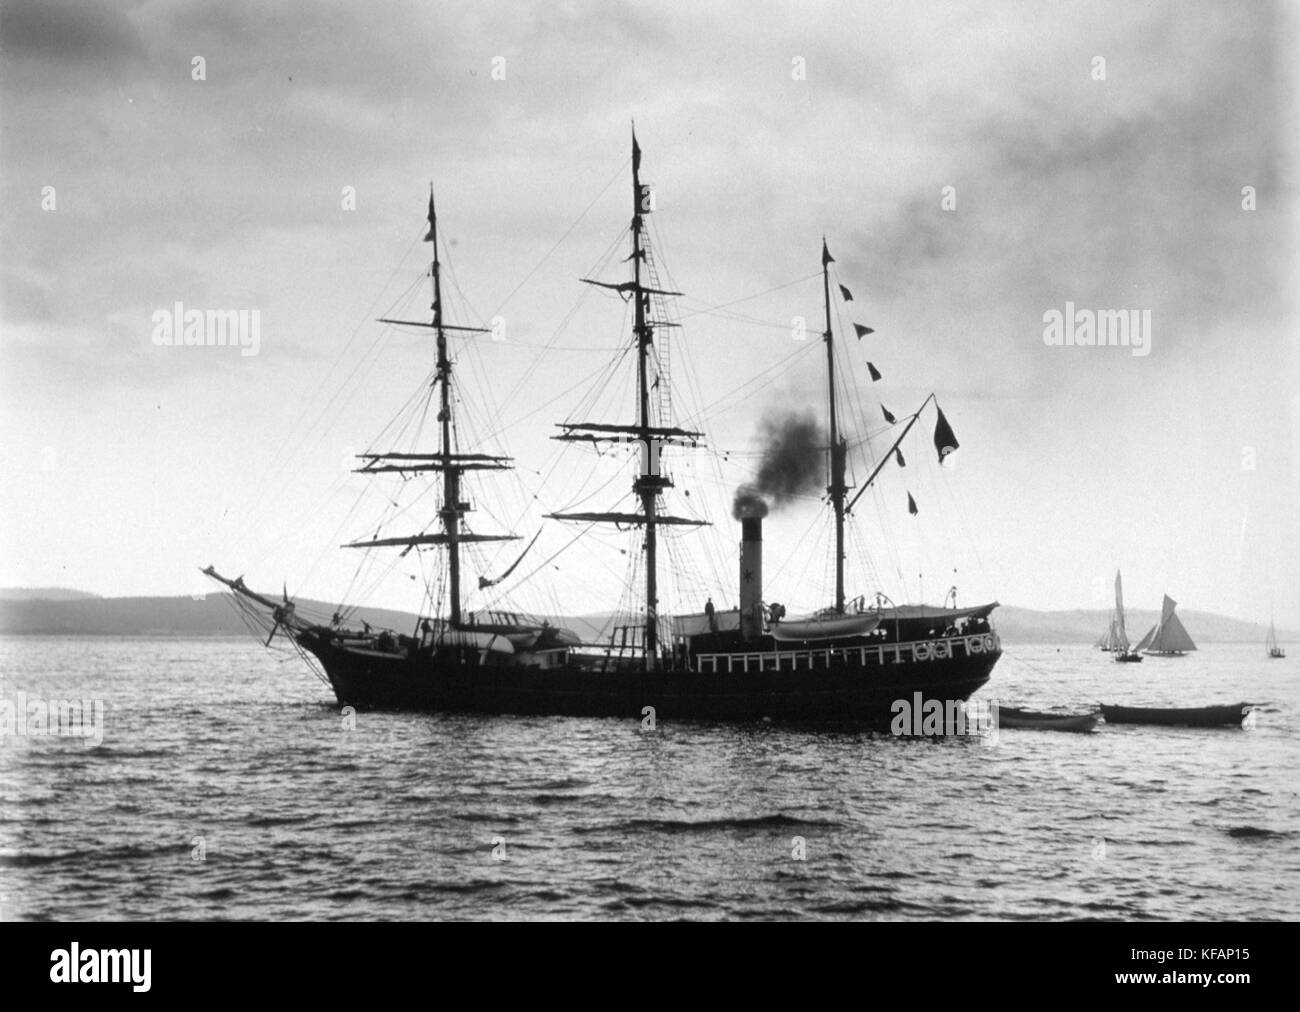 Expedition ship SS Southern Cross She was lost at sea returning from the seal hunt on March 31, 1914, killing all - Stock Image